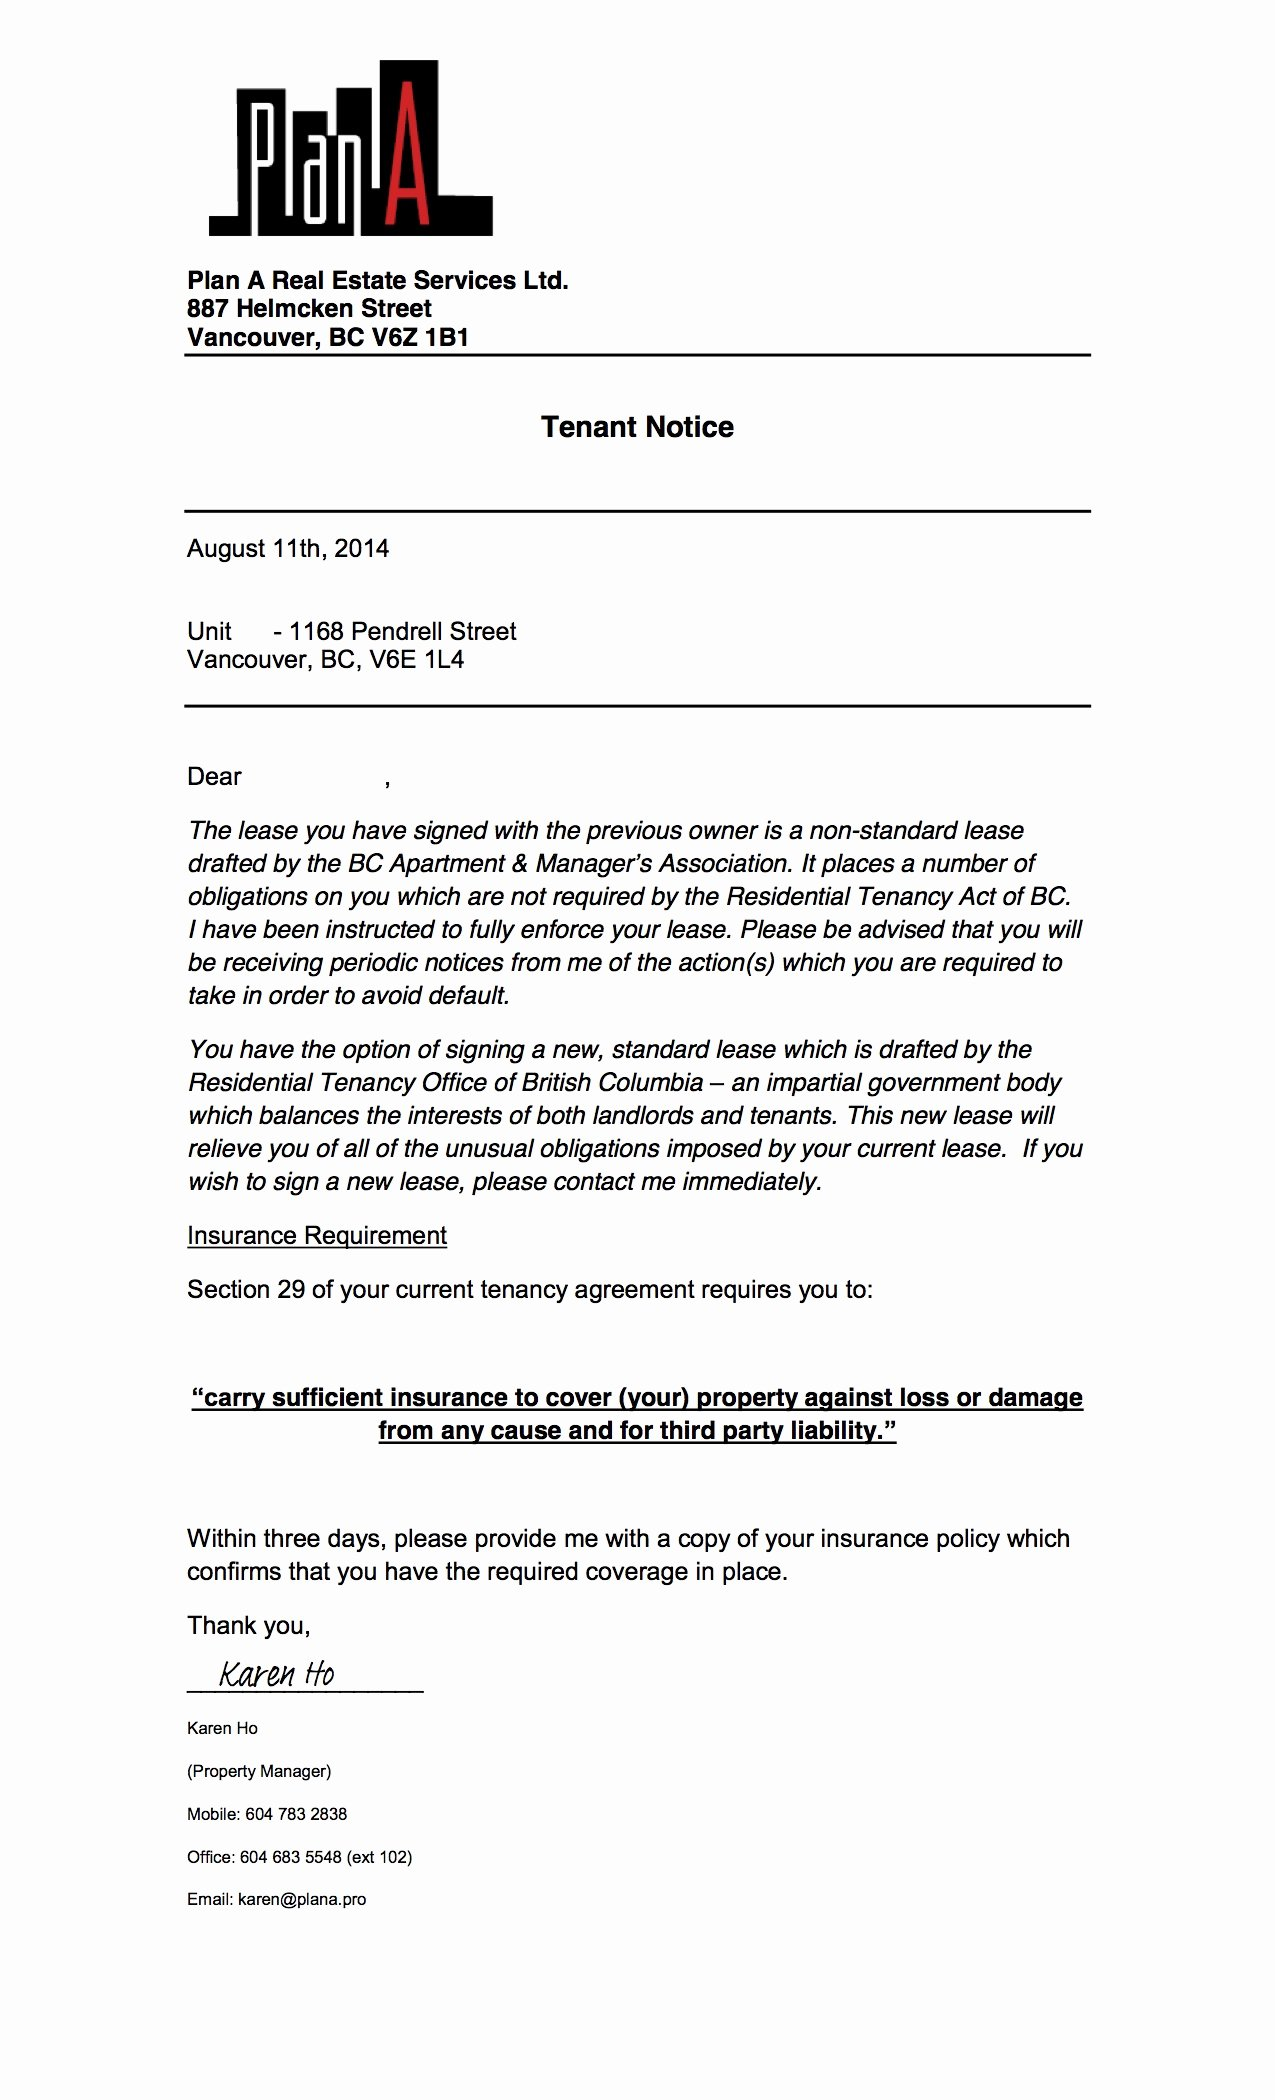 Tenant Letter to Landlord Unique Greedeviction 1168pendrell